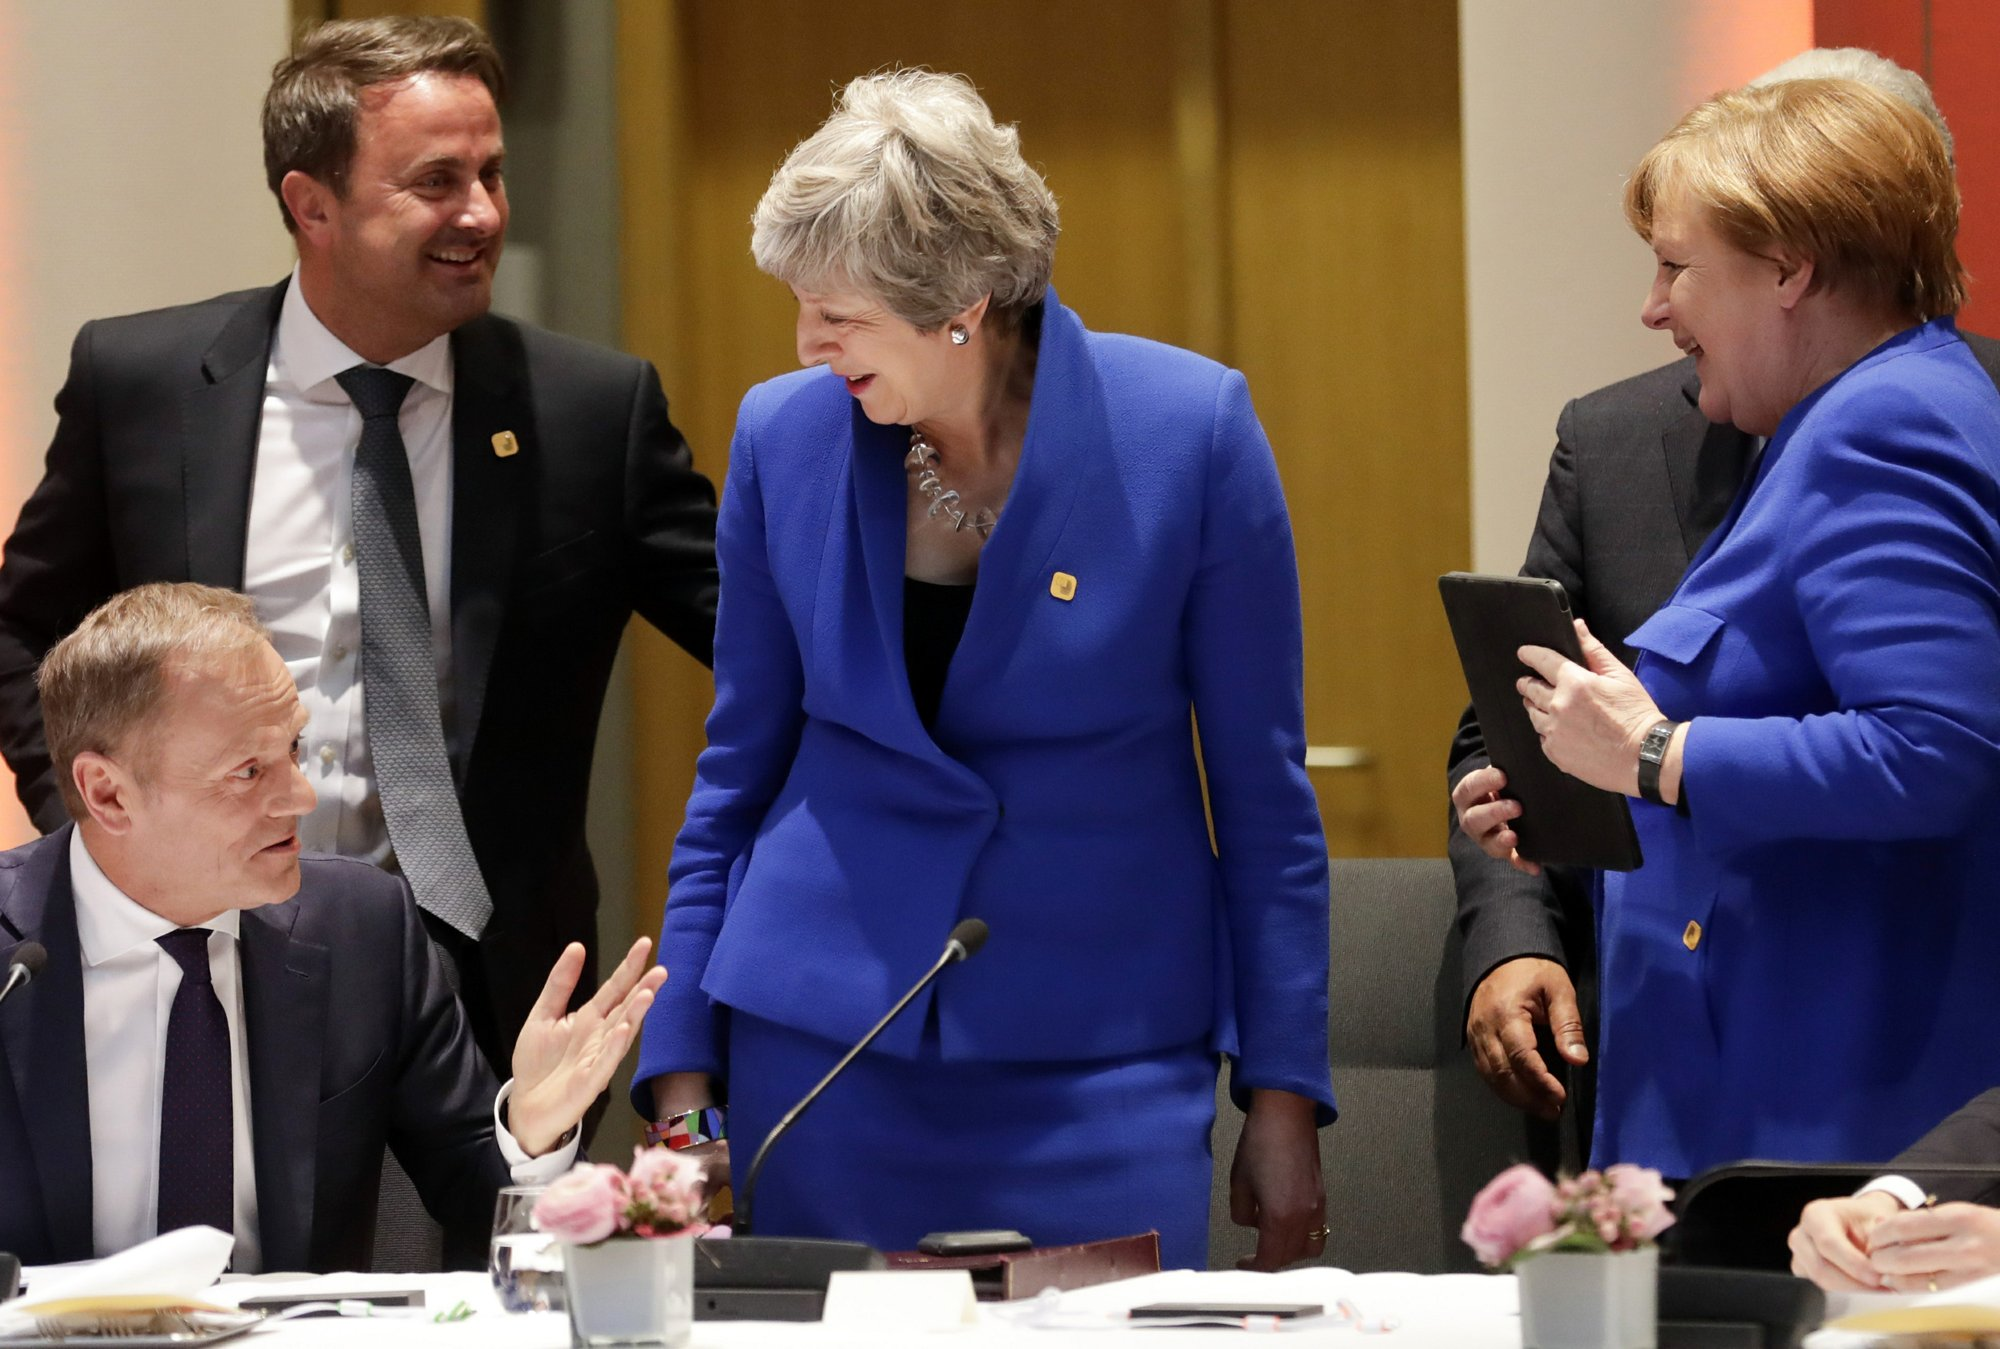 Trick or treat? EU, UK agree to delay Brexit until Halloween